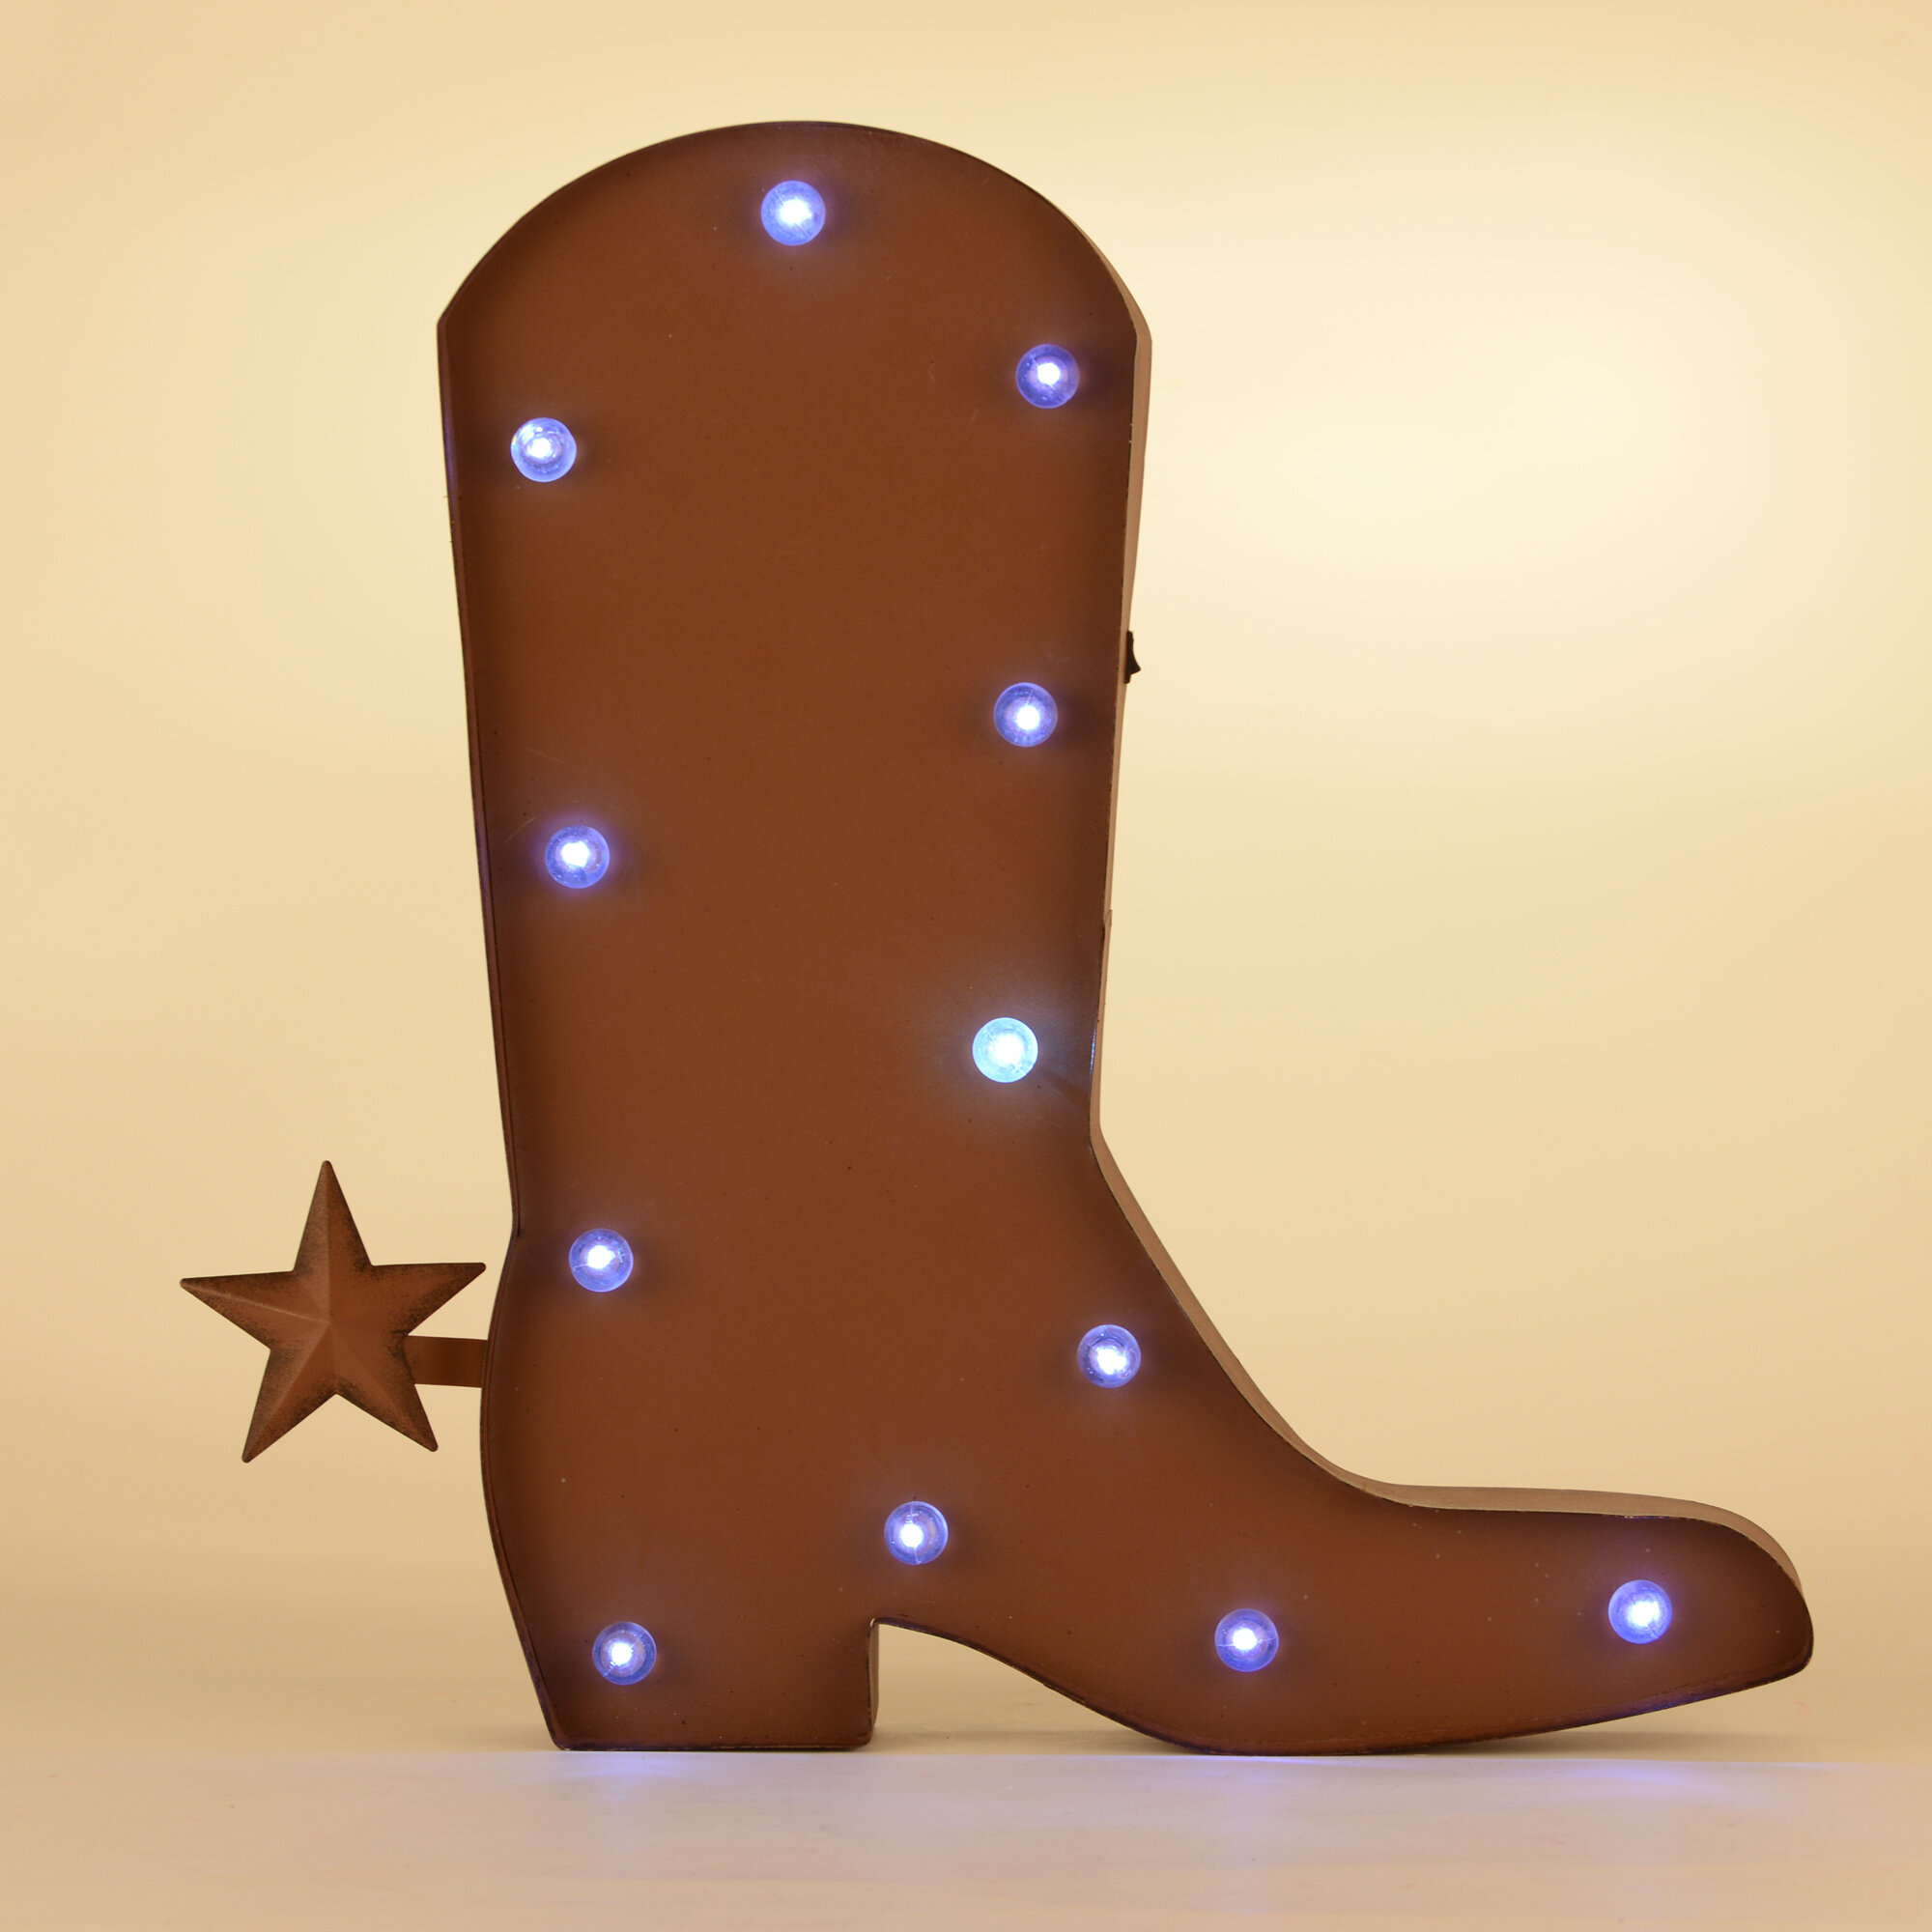 Glitzhome rustic marquee led lighted western cowboy boot sign wall glitzhome rustic marquee led lighted western cowboy boot sign wall dcor reviews wayfair floridaeventfo Images